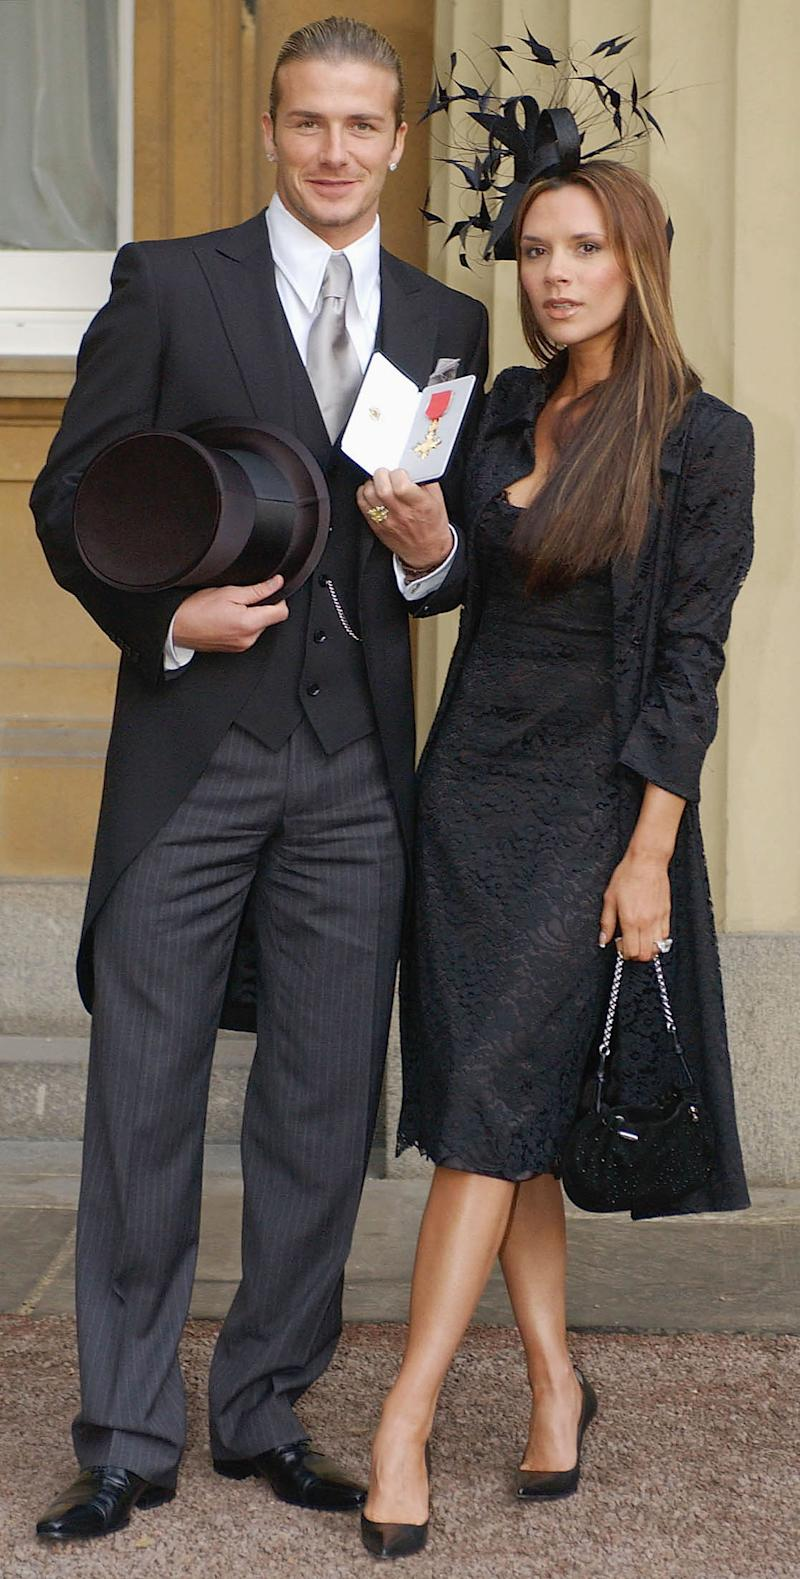 David Beckham received an OBE at Buckingham Palace on November 27, 2003 [Photo: Getty]